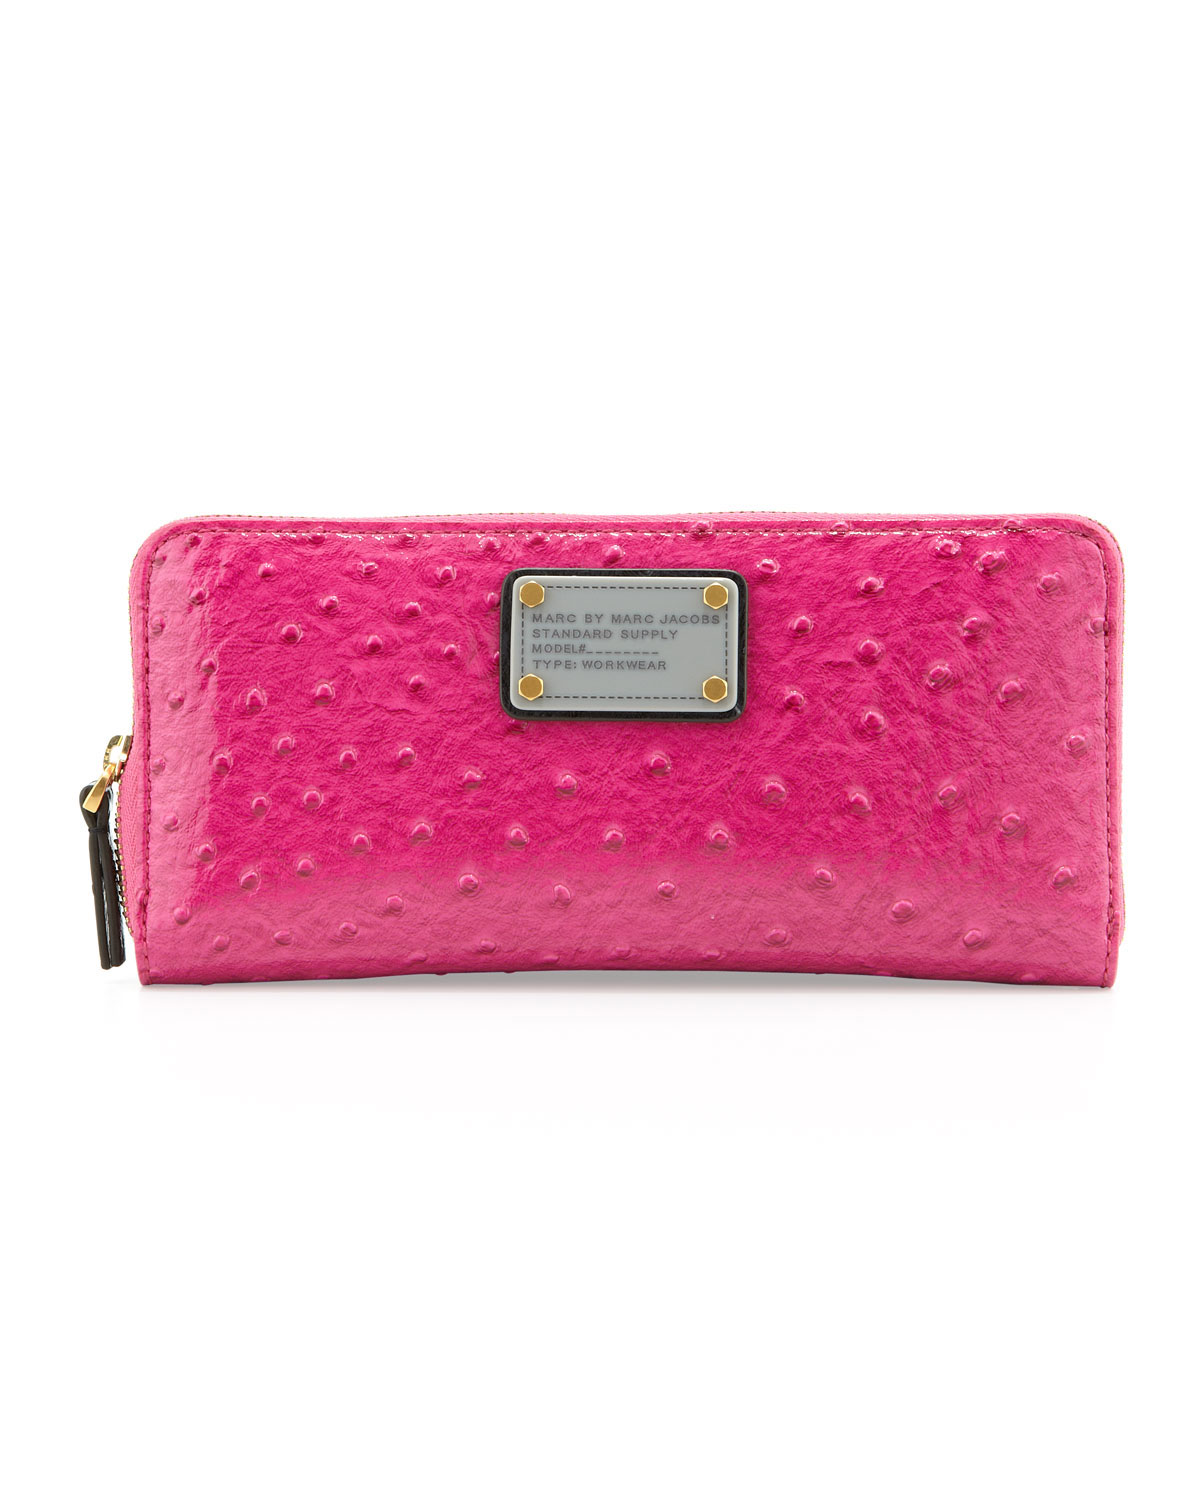 Classic Q Ostrich Embossed Slim Zip Wallet, Pop Pink   MARC by Marc Jacobs